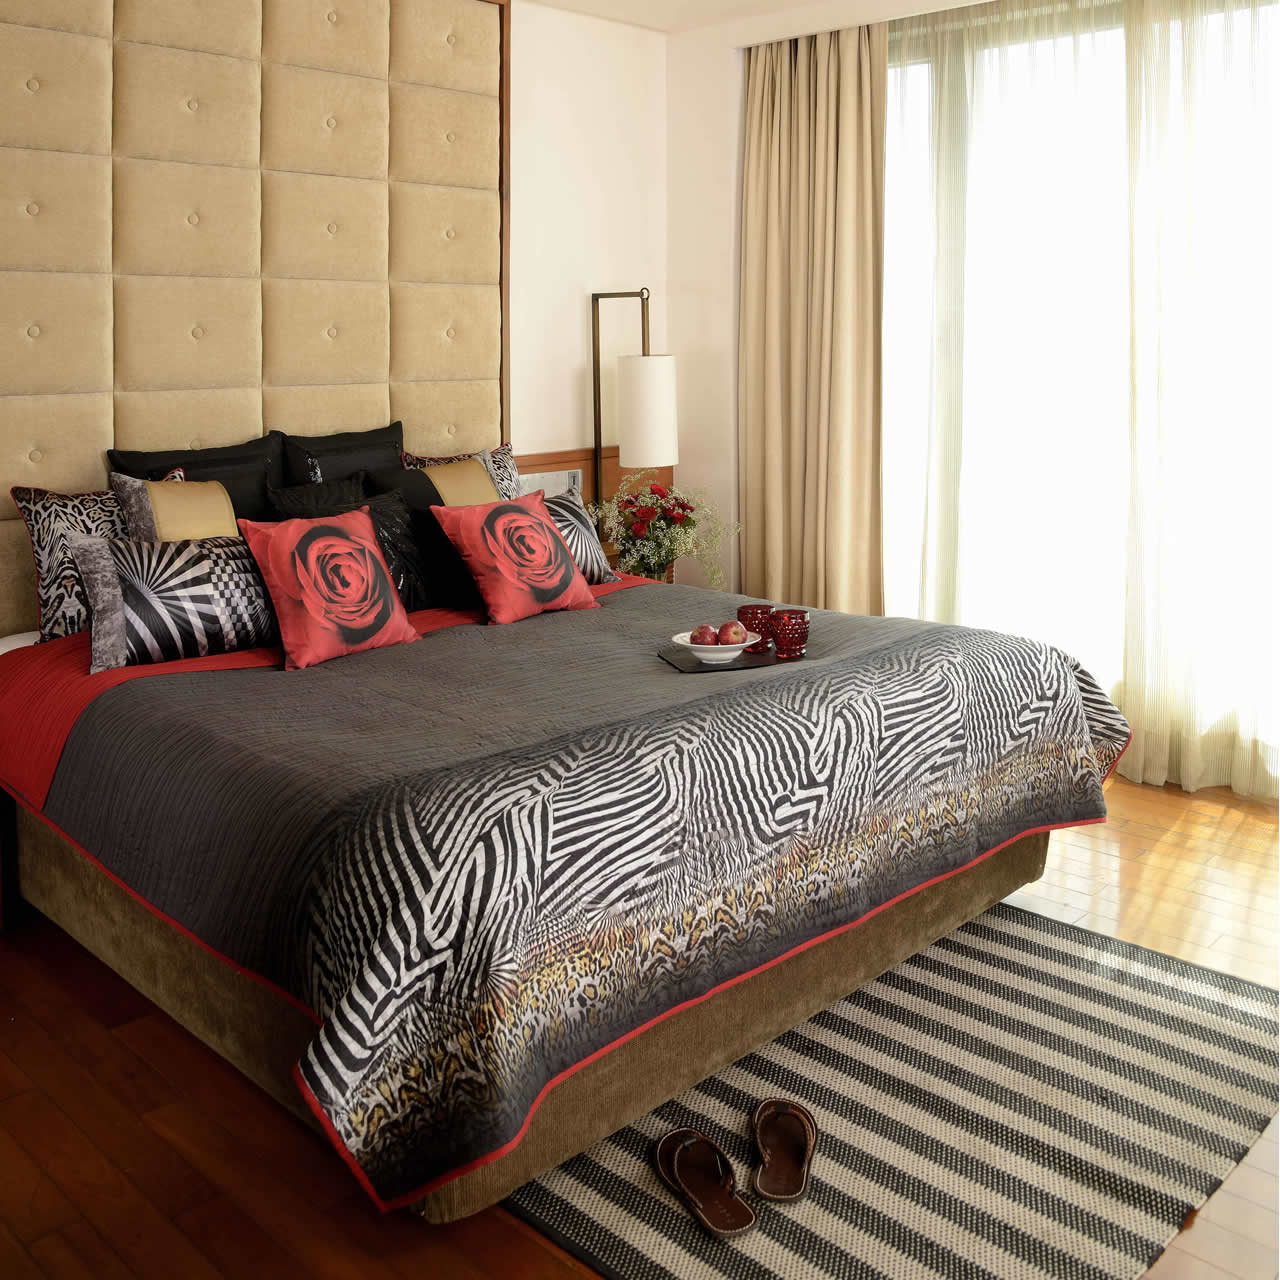 Home Deocr: Satya Paul Launches Its First Ever Home Decor Line